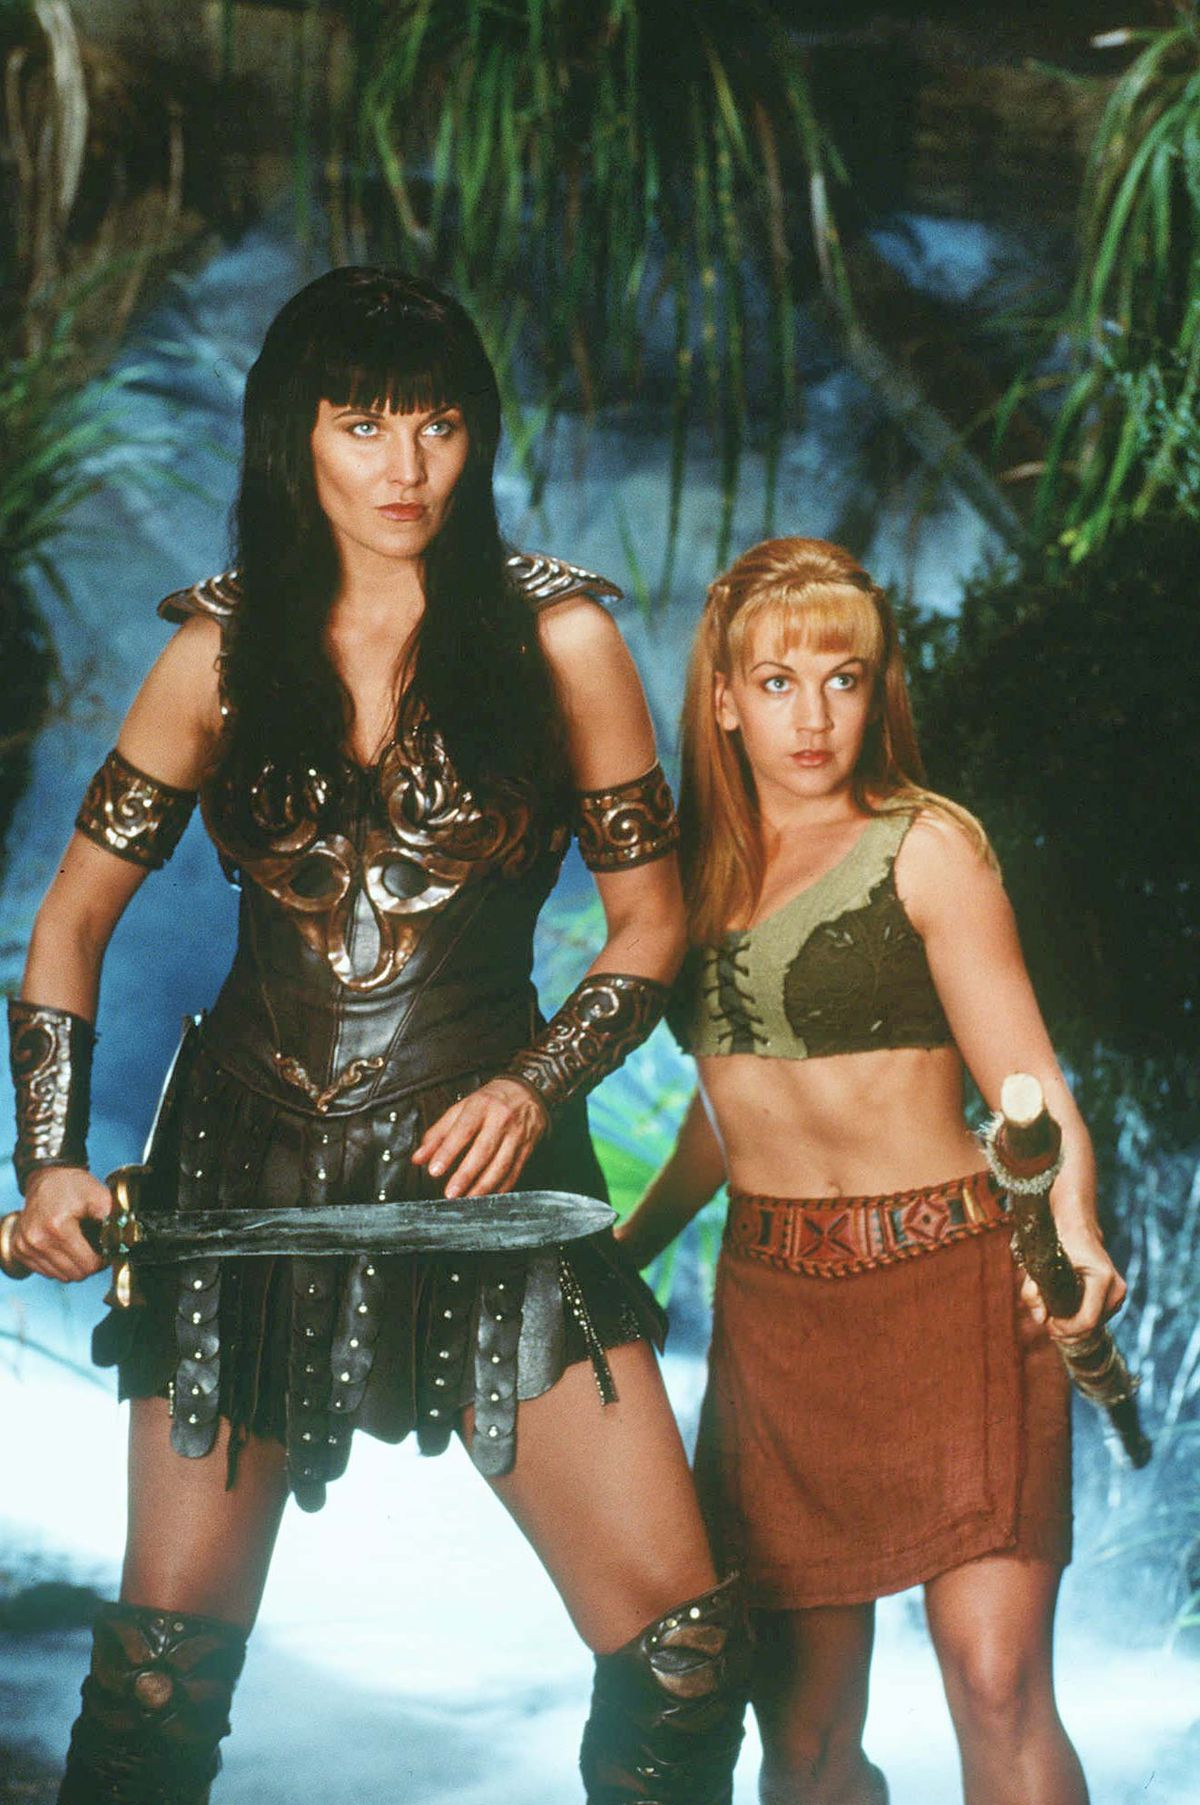 """Lucy Lawless as Xena poses with Renee O'Connor, who plays her sidekick Gabrielle in the syndicated television show """"Xena: Warrior Princess.''"""